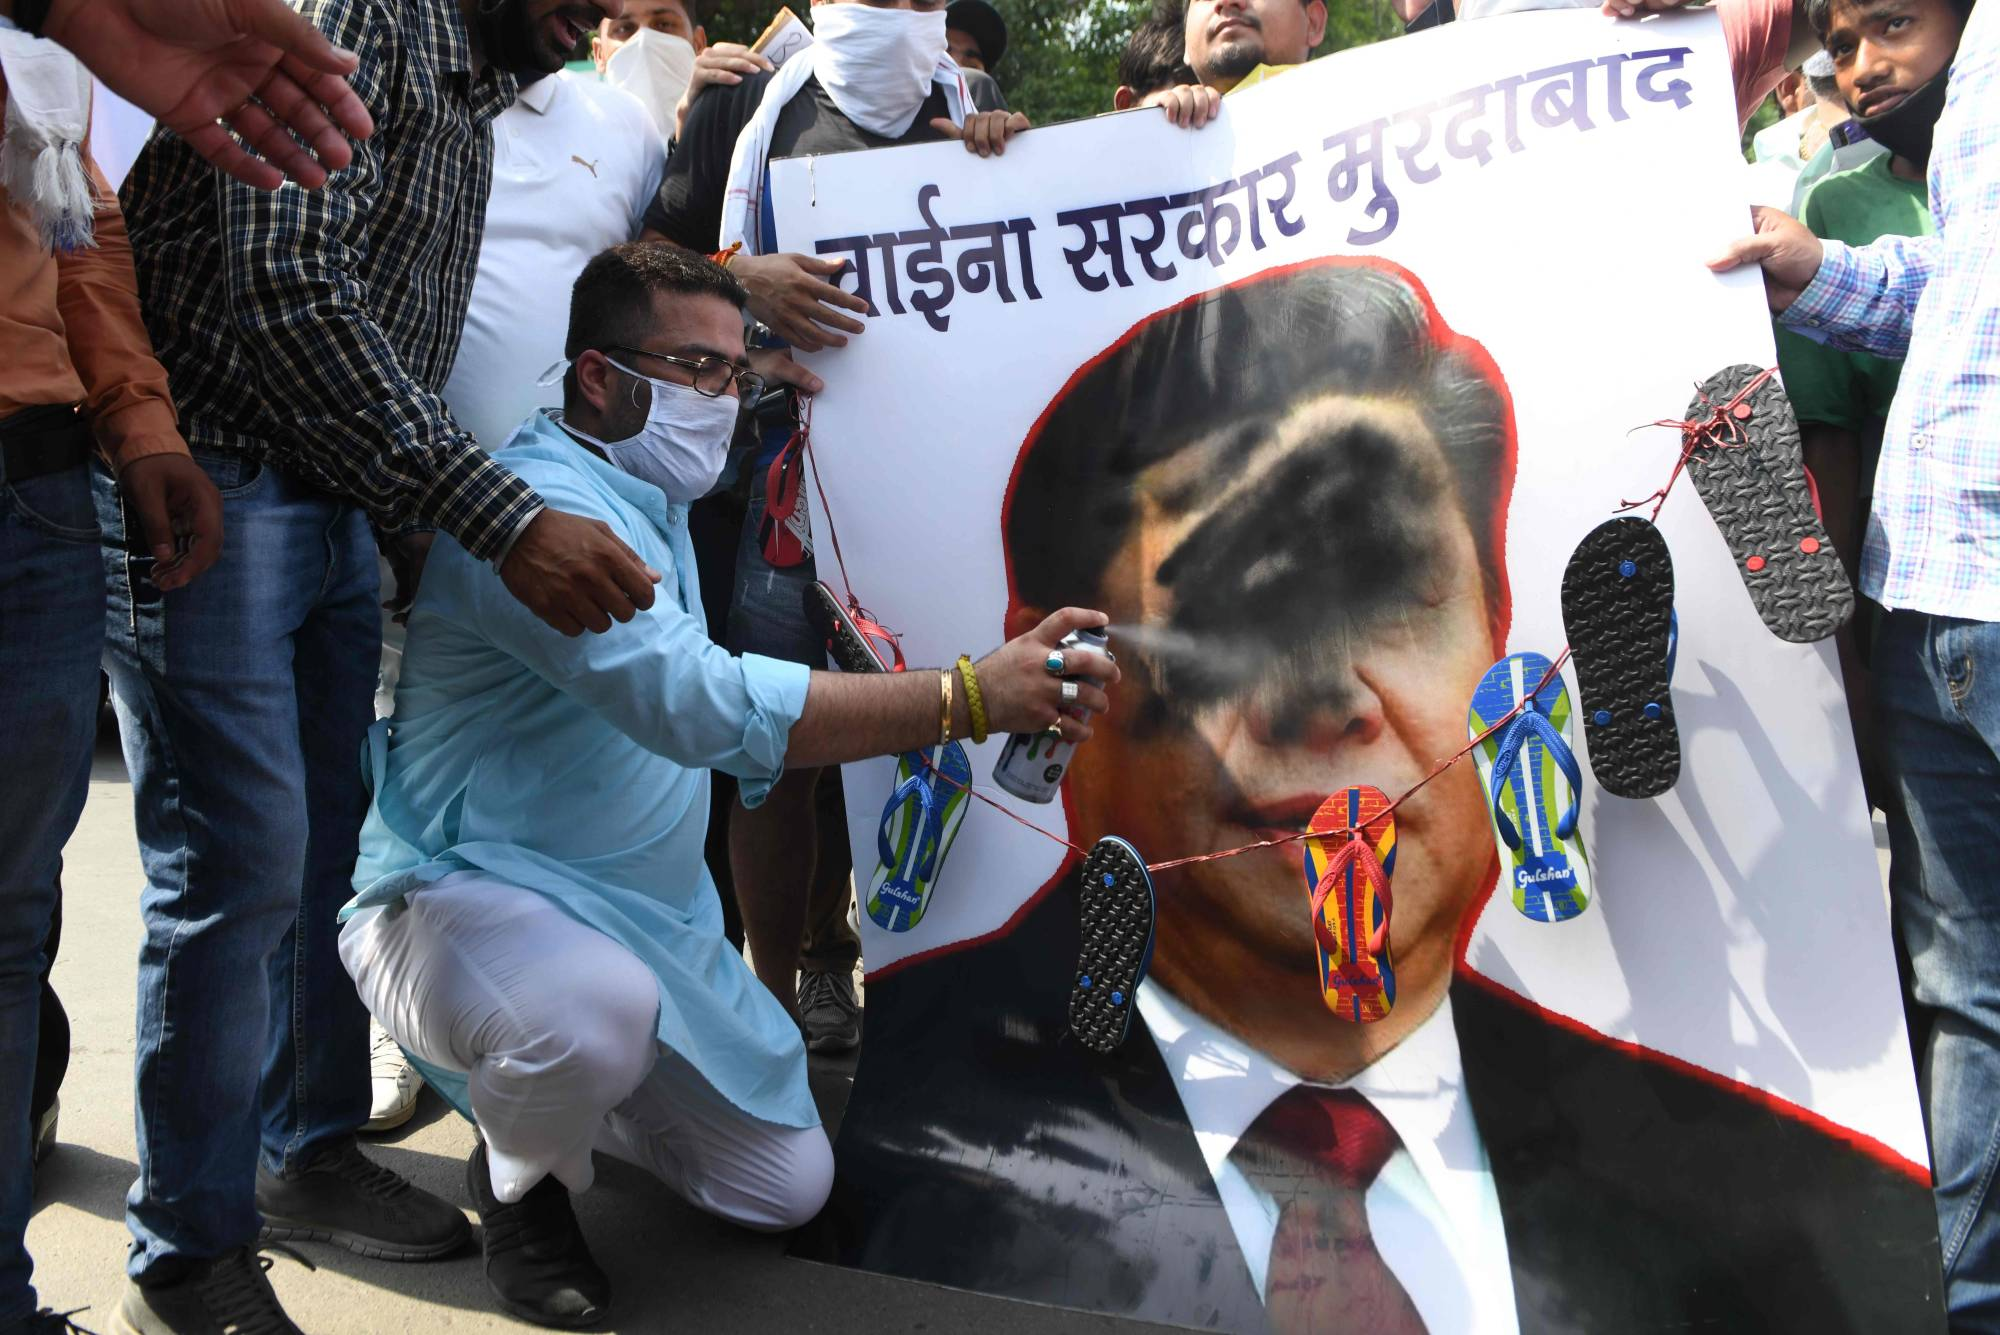 Activists spray black paint on a poster depicting Chinese President Xi Jinping during an anti-China protest in Amritsar, India, on Monday.  | AFP-JIJI